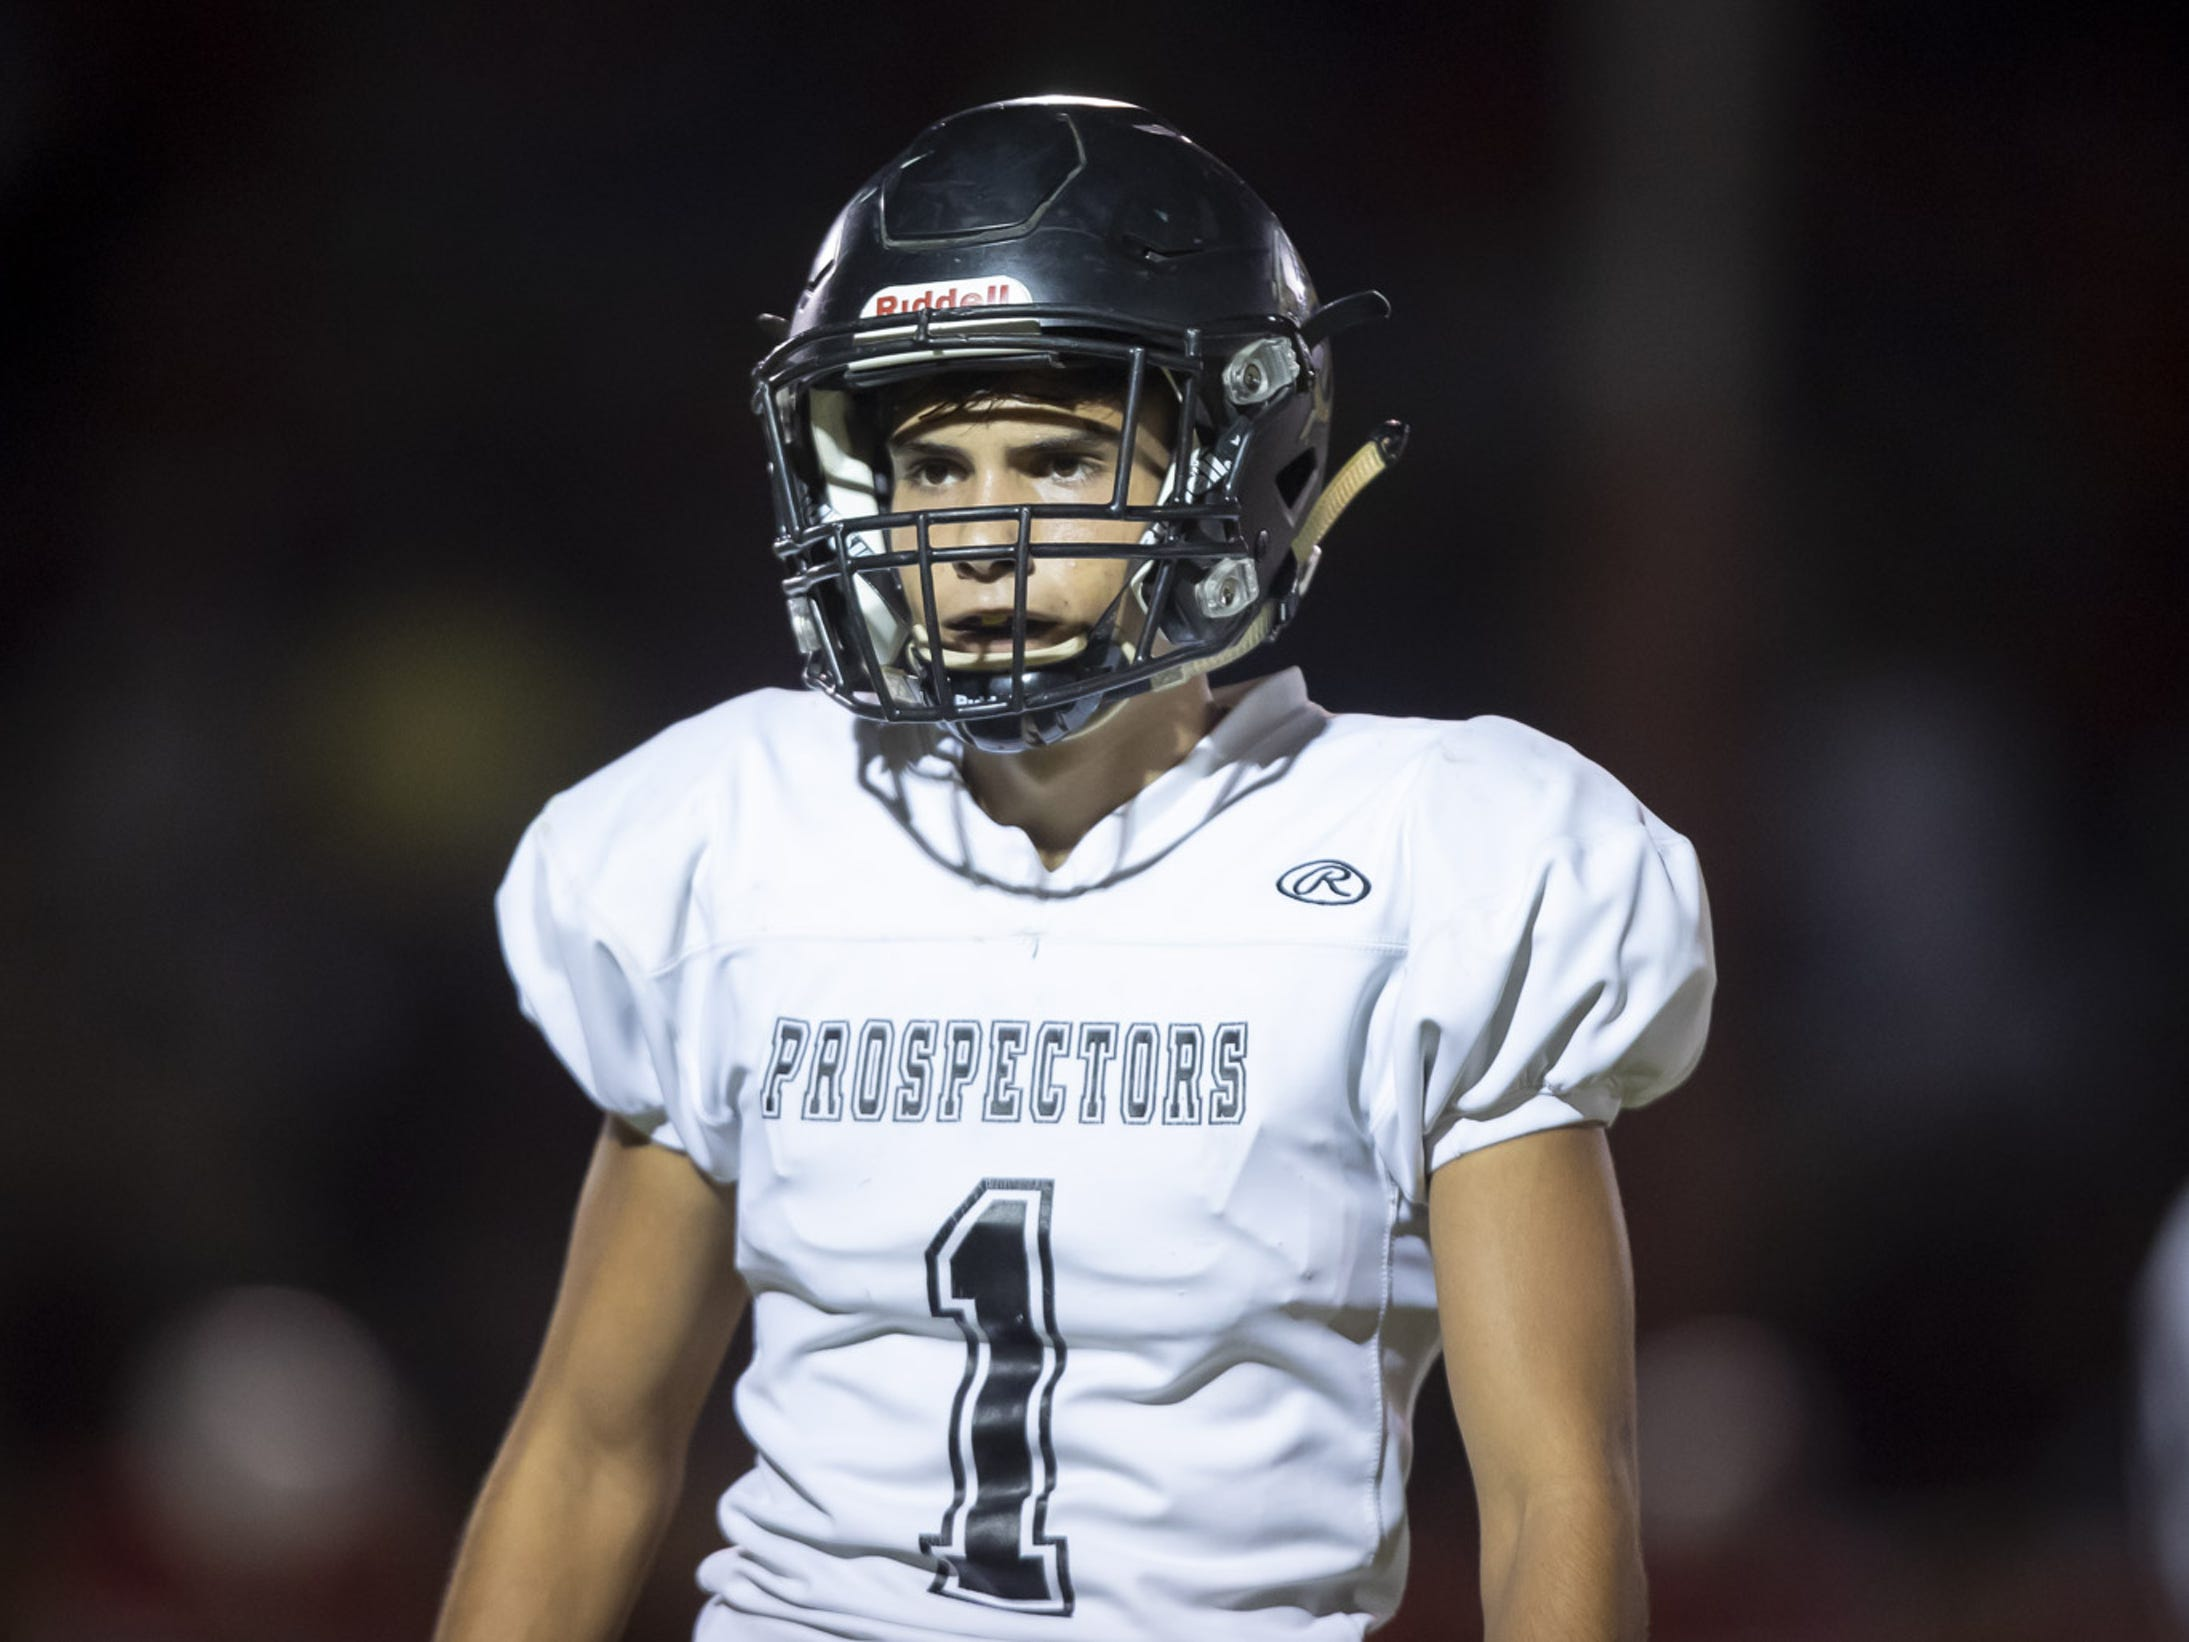 Senior defensive back Gabe Nogales (1) of the Apache Junction Prospectors looks on during the game against the Glendale Cardinals at Glendale High School on Friday, October 19, 2018 in Glendale, Arizona. #azhsfb